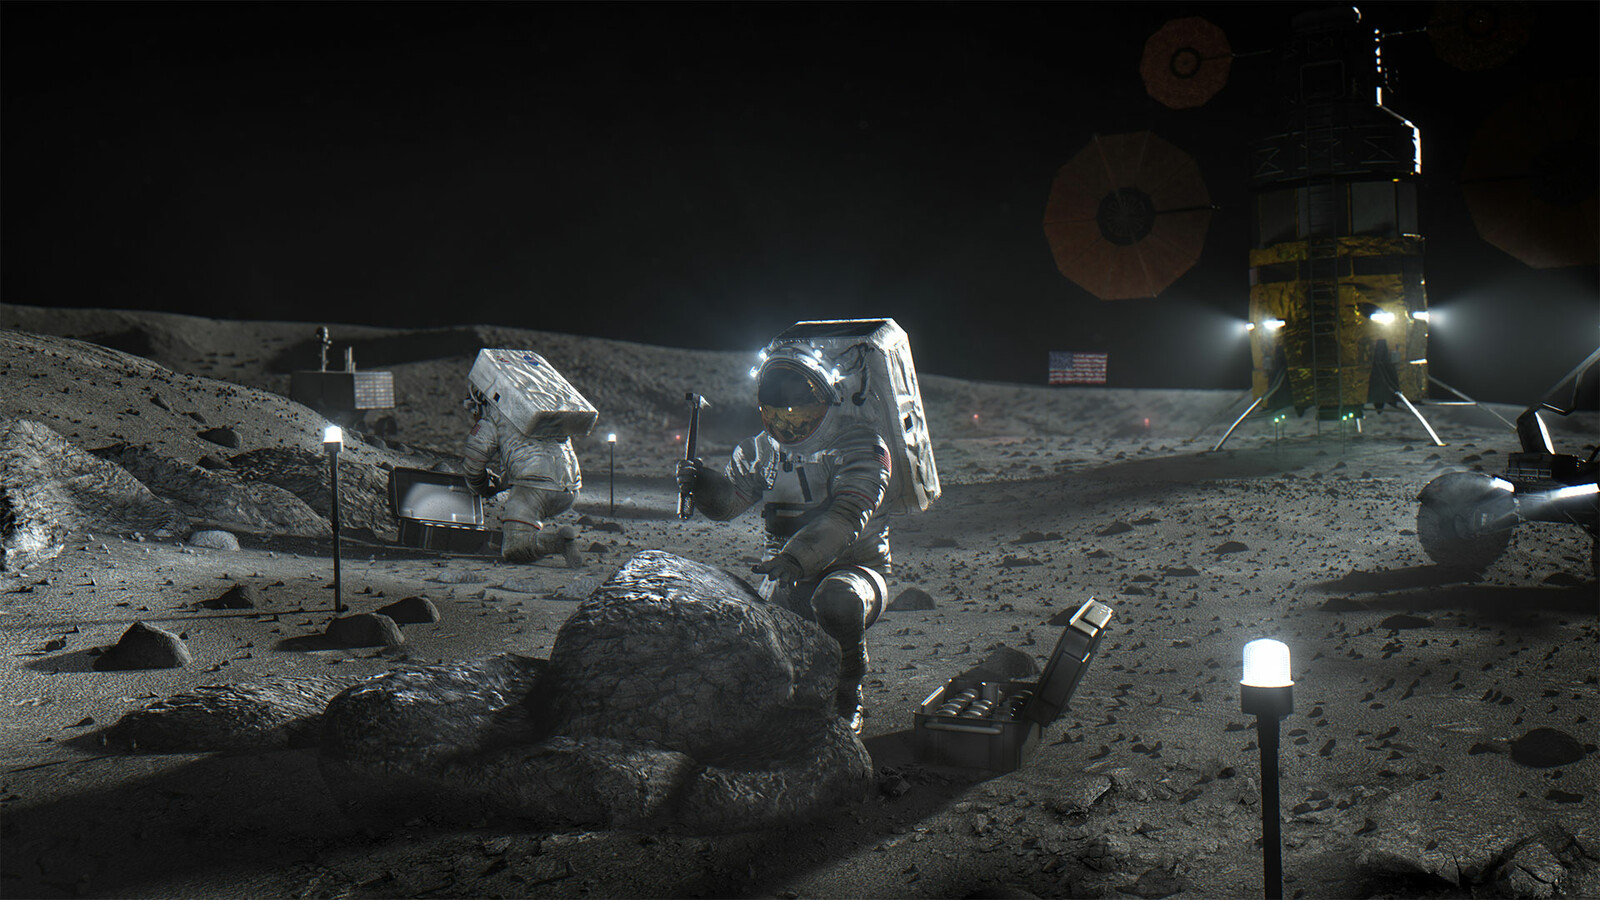 Concept image of Astronauts at a Lunar Homestead